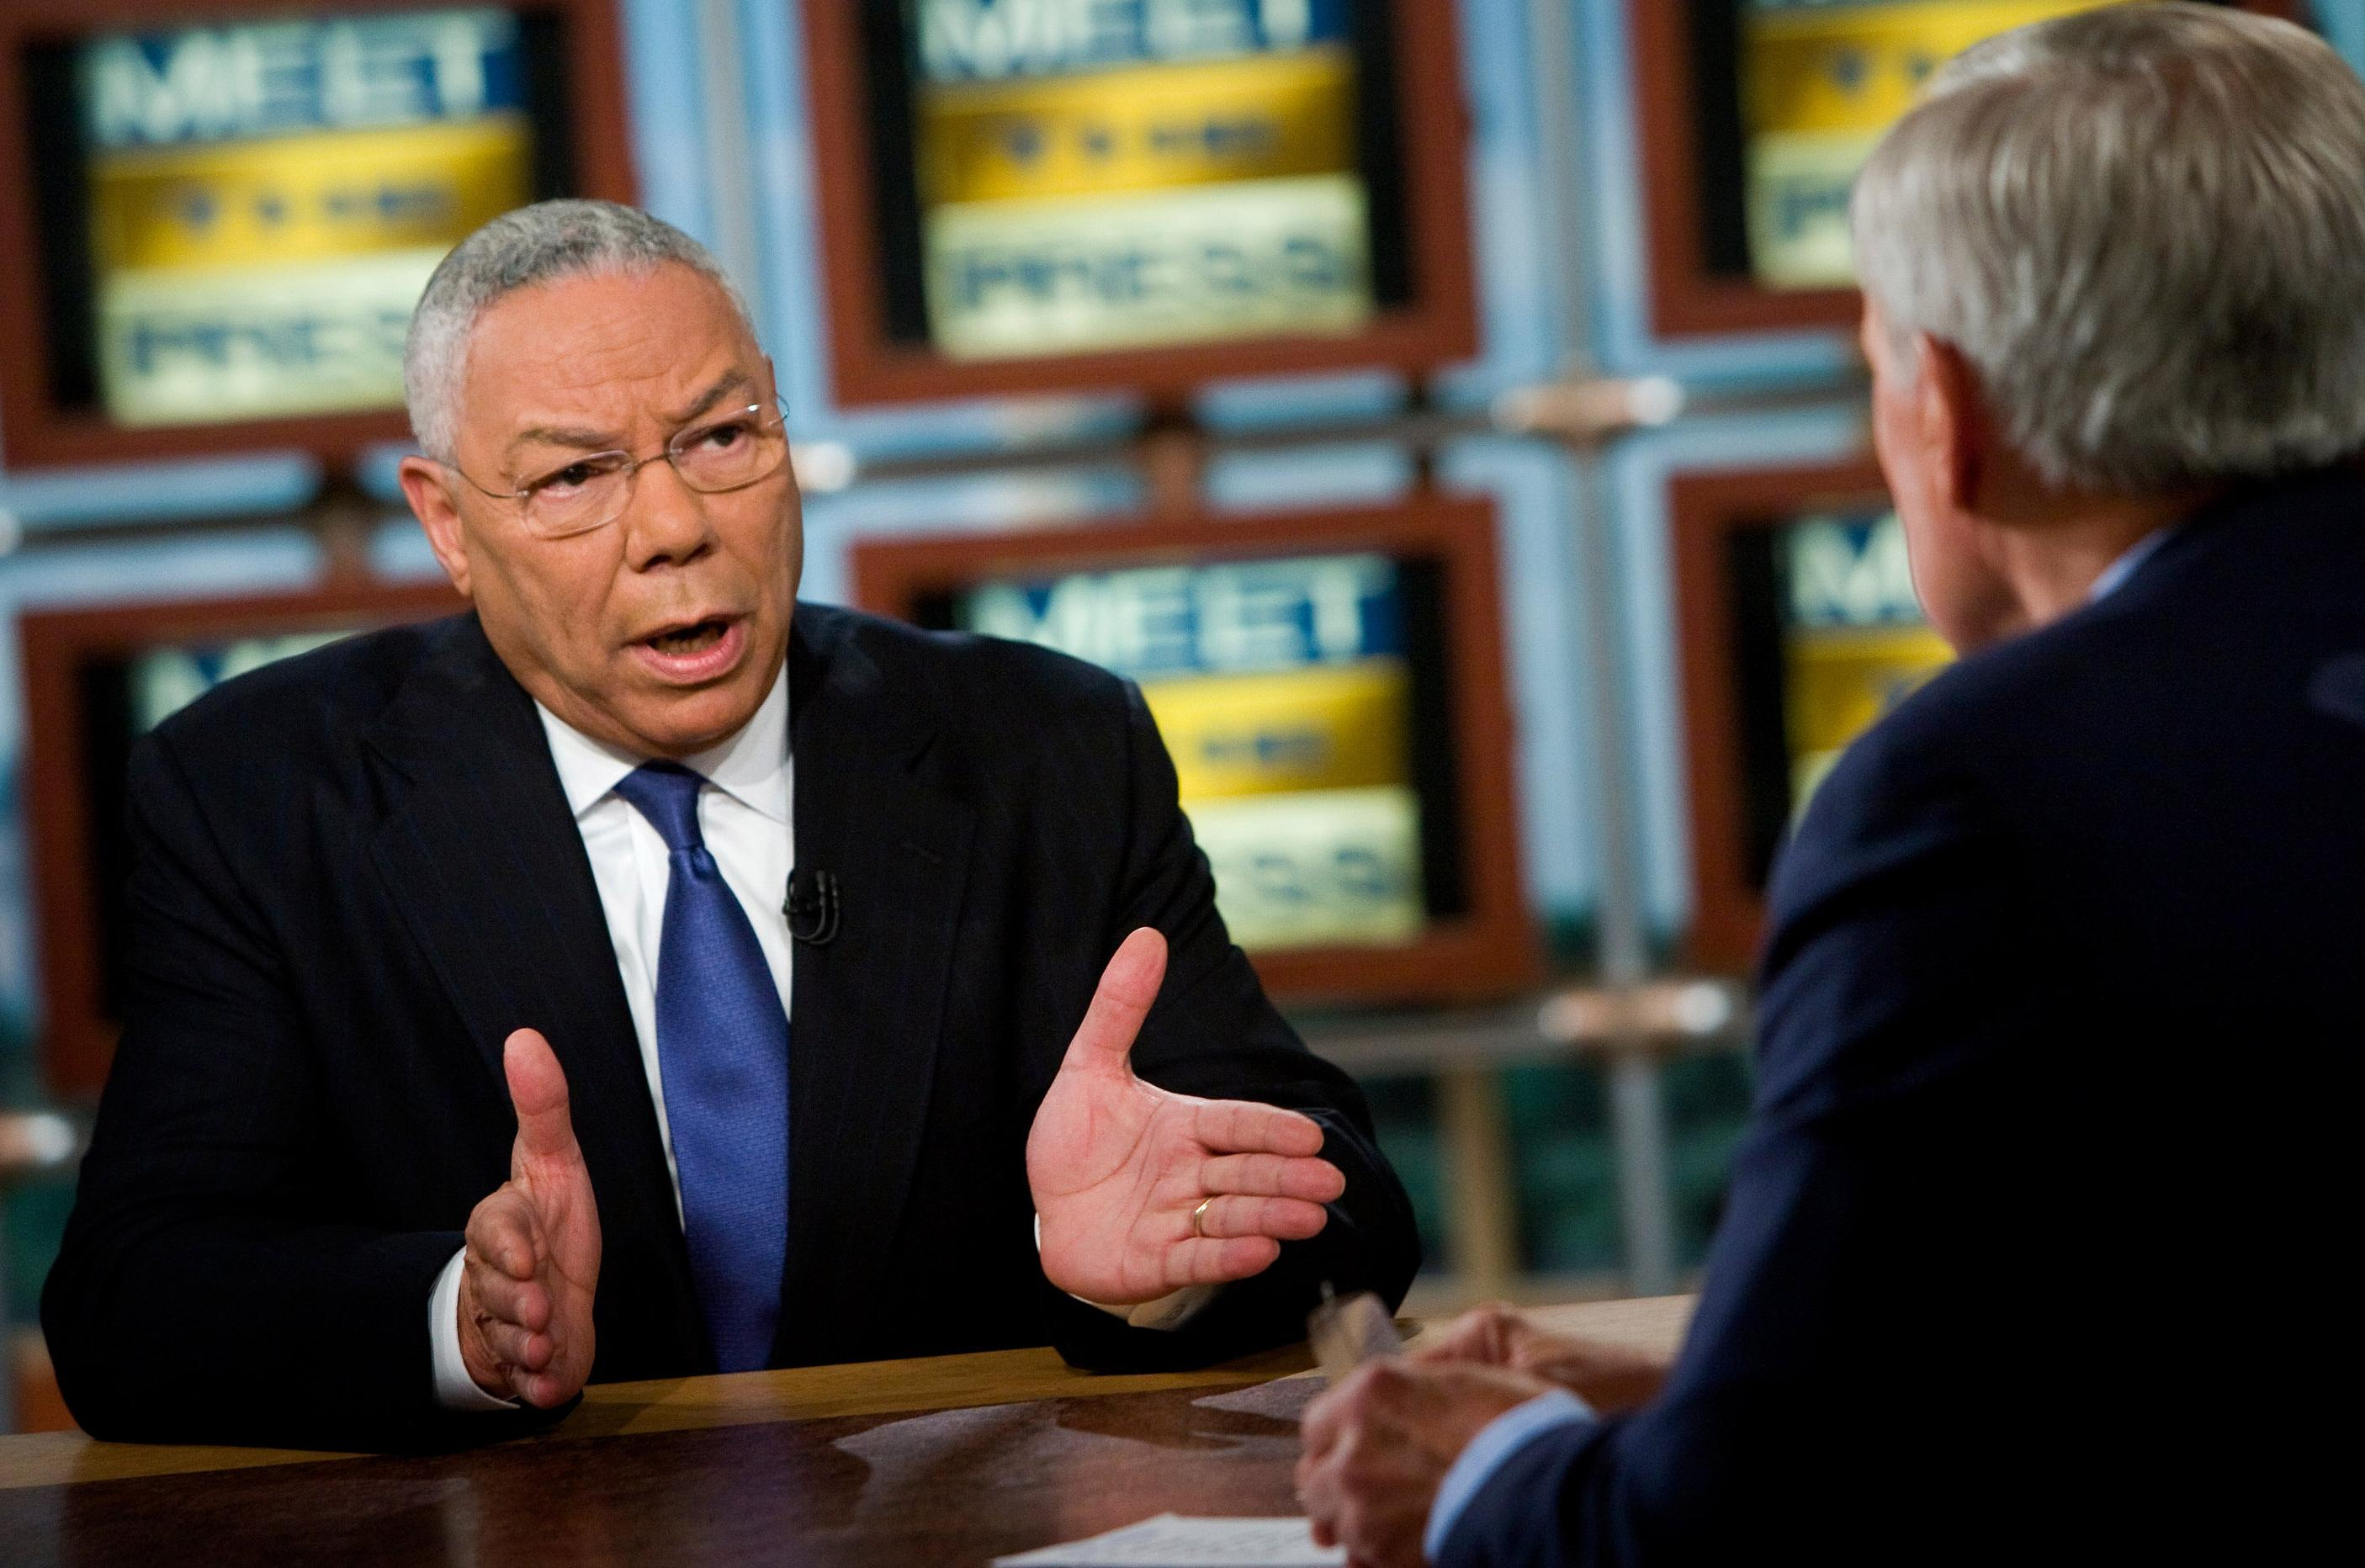 colin powell on meet the press october 19 2008